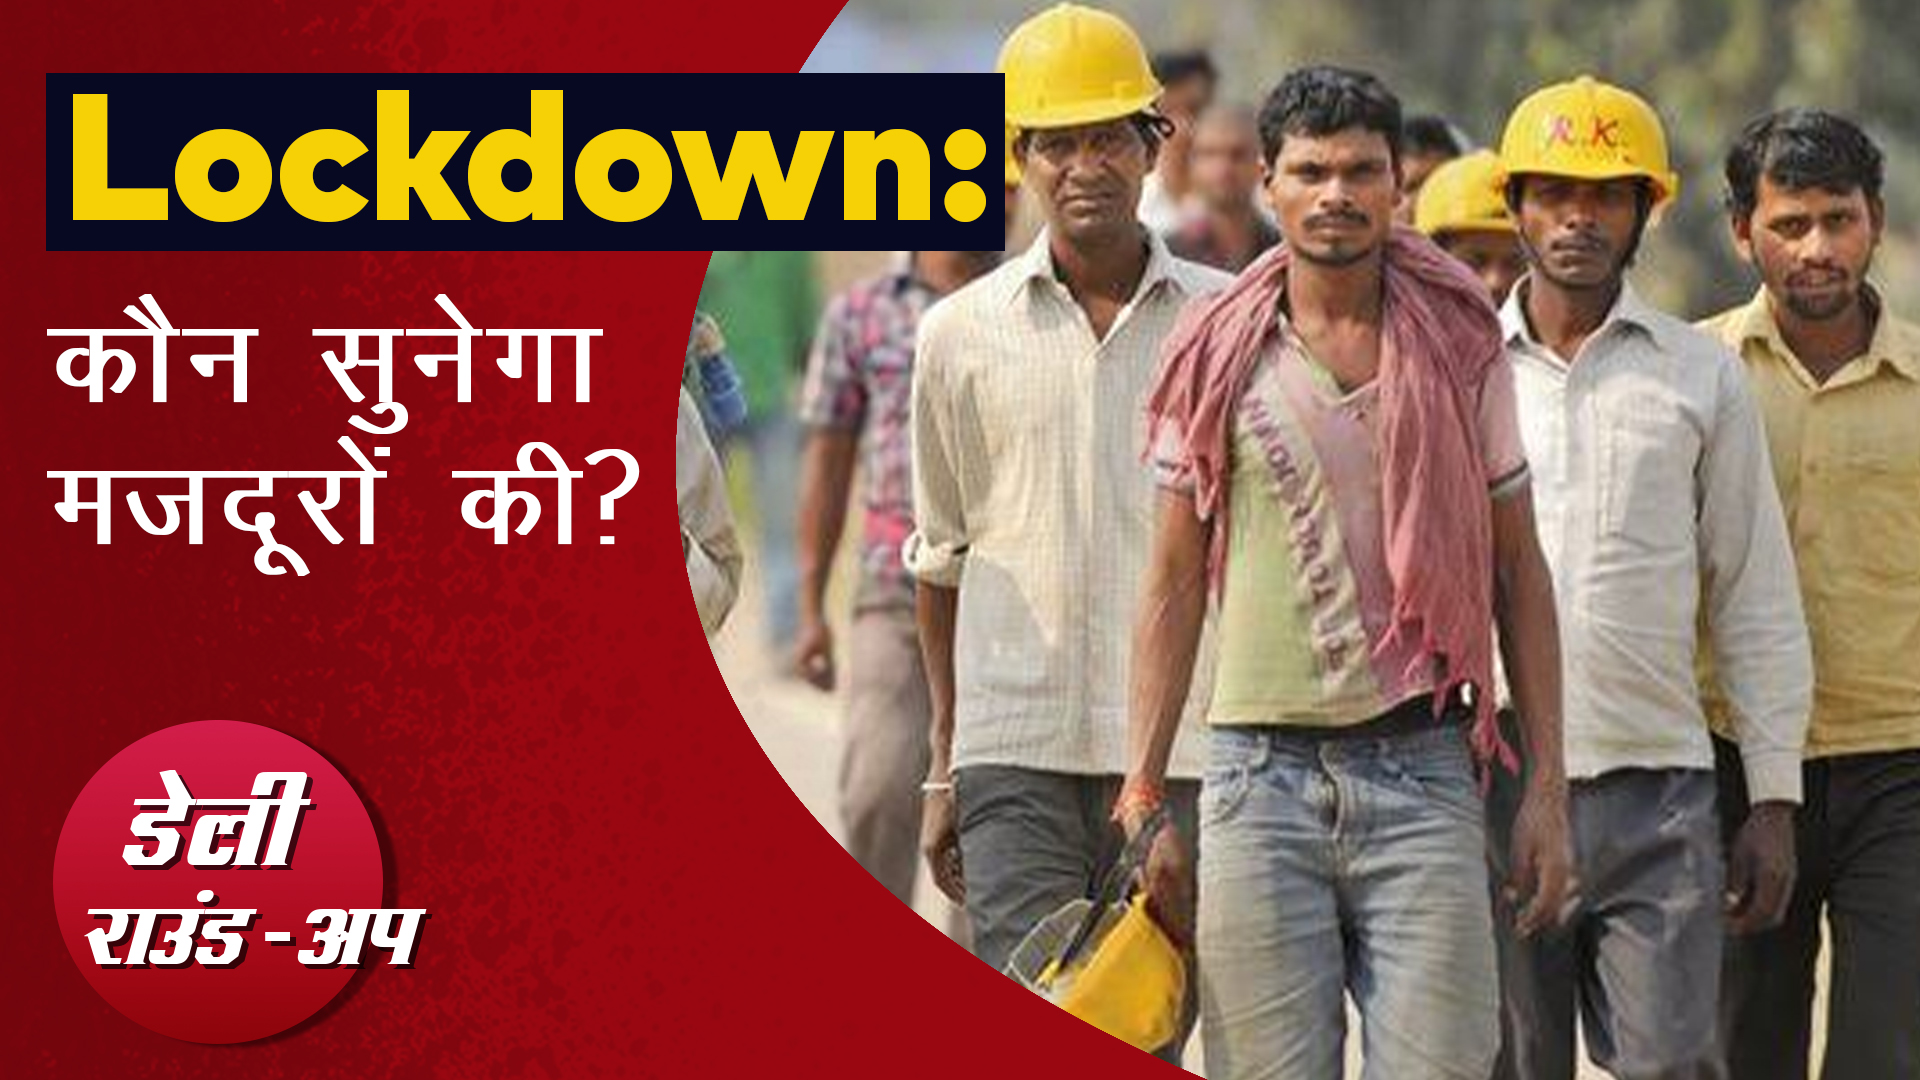 LockDown West Bengal